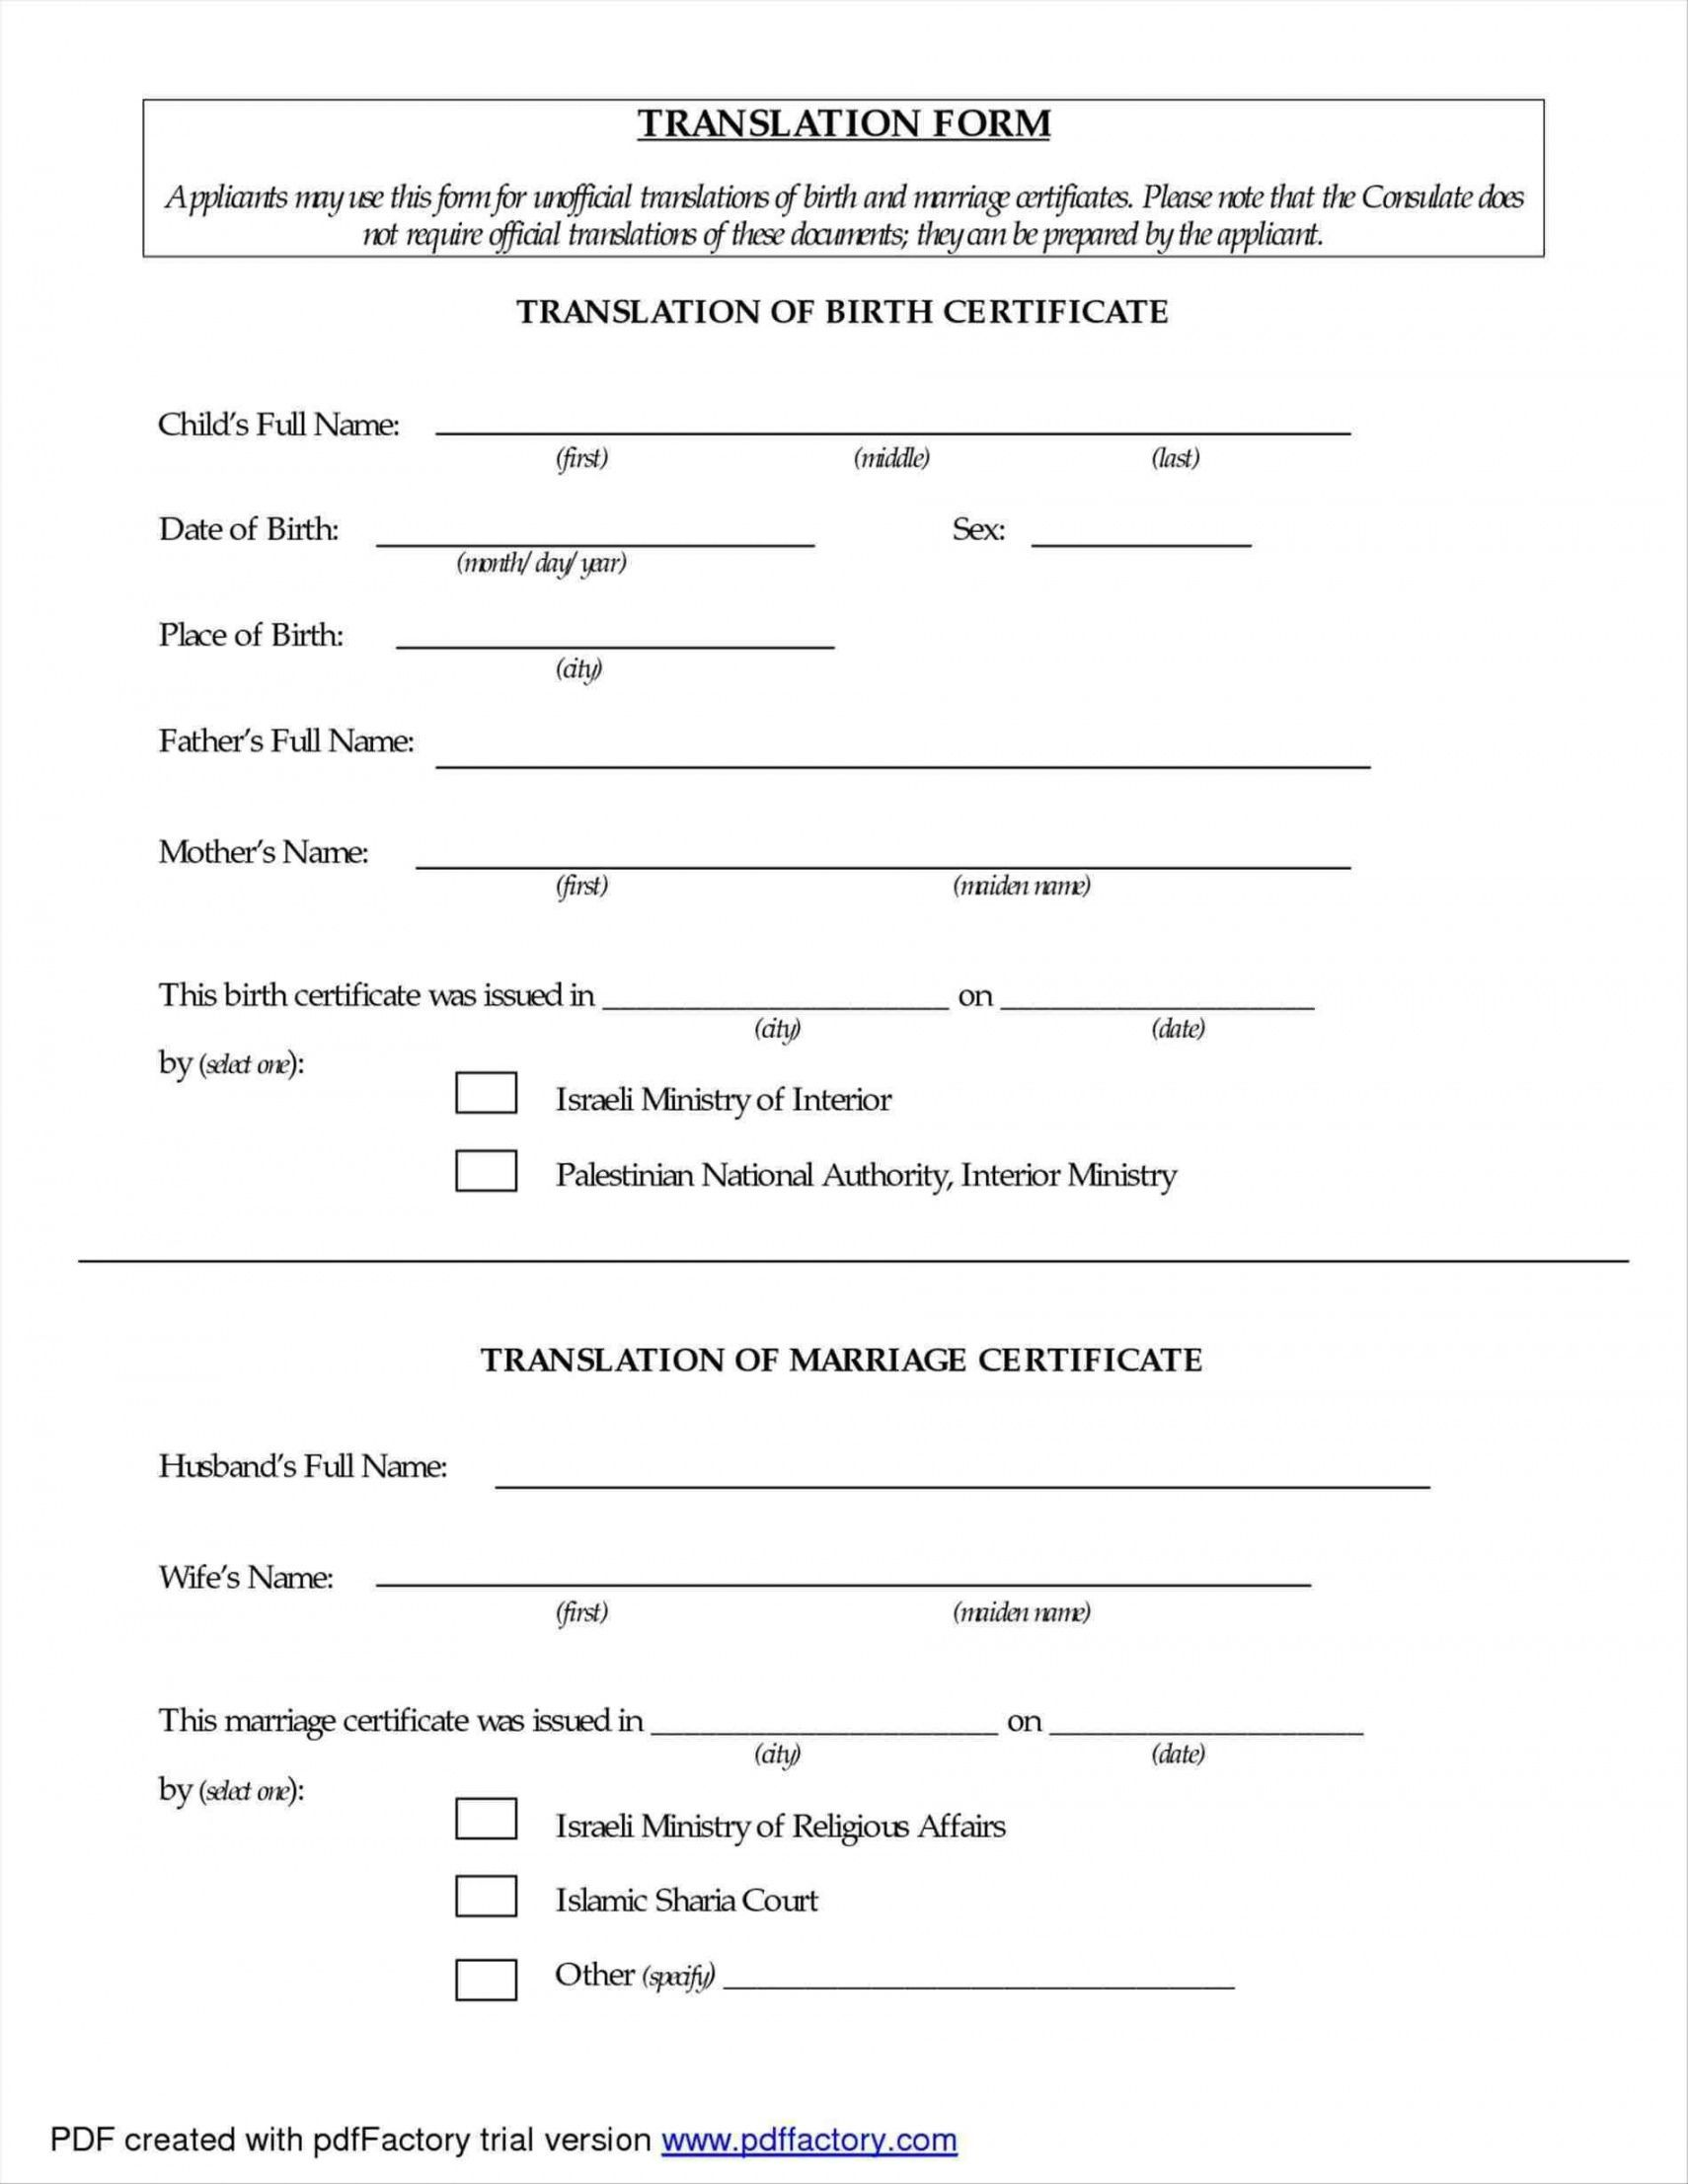 Get Our Sample Of Mexican Birth Certificate Translation